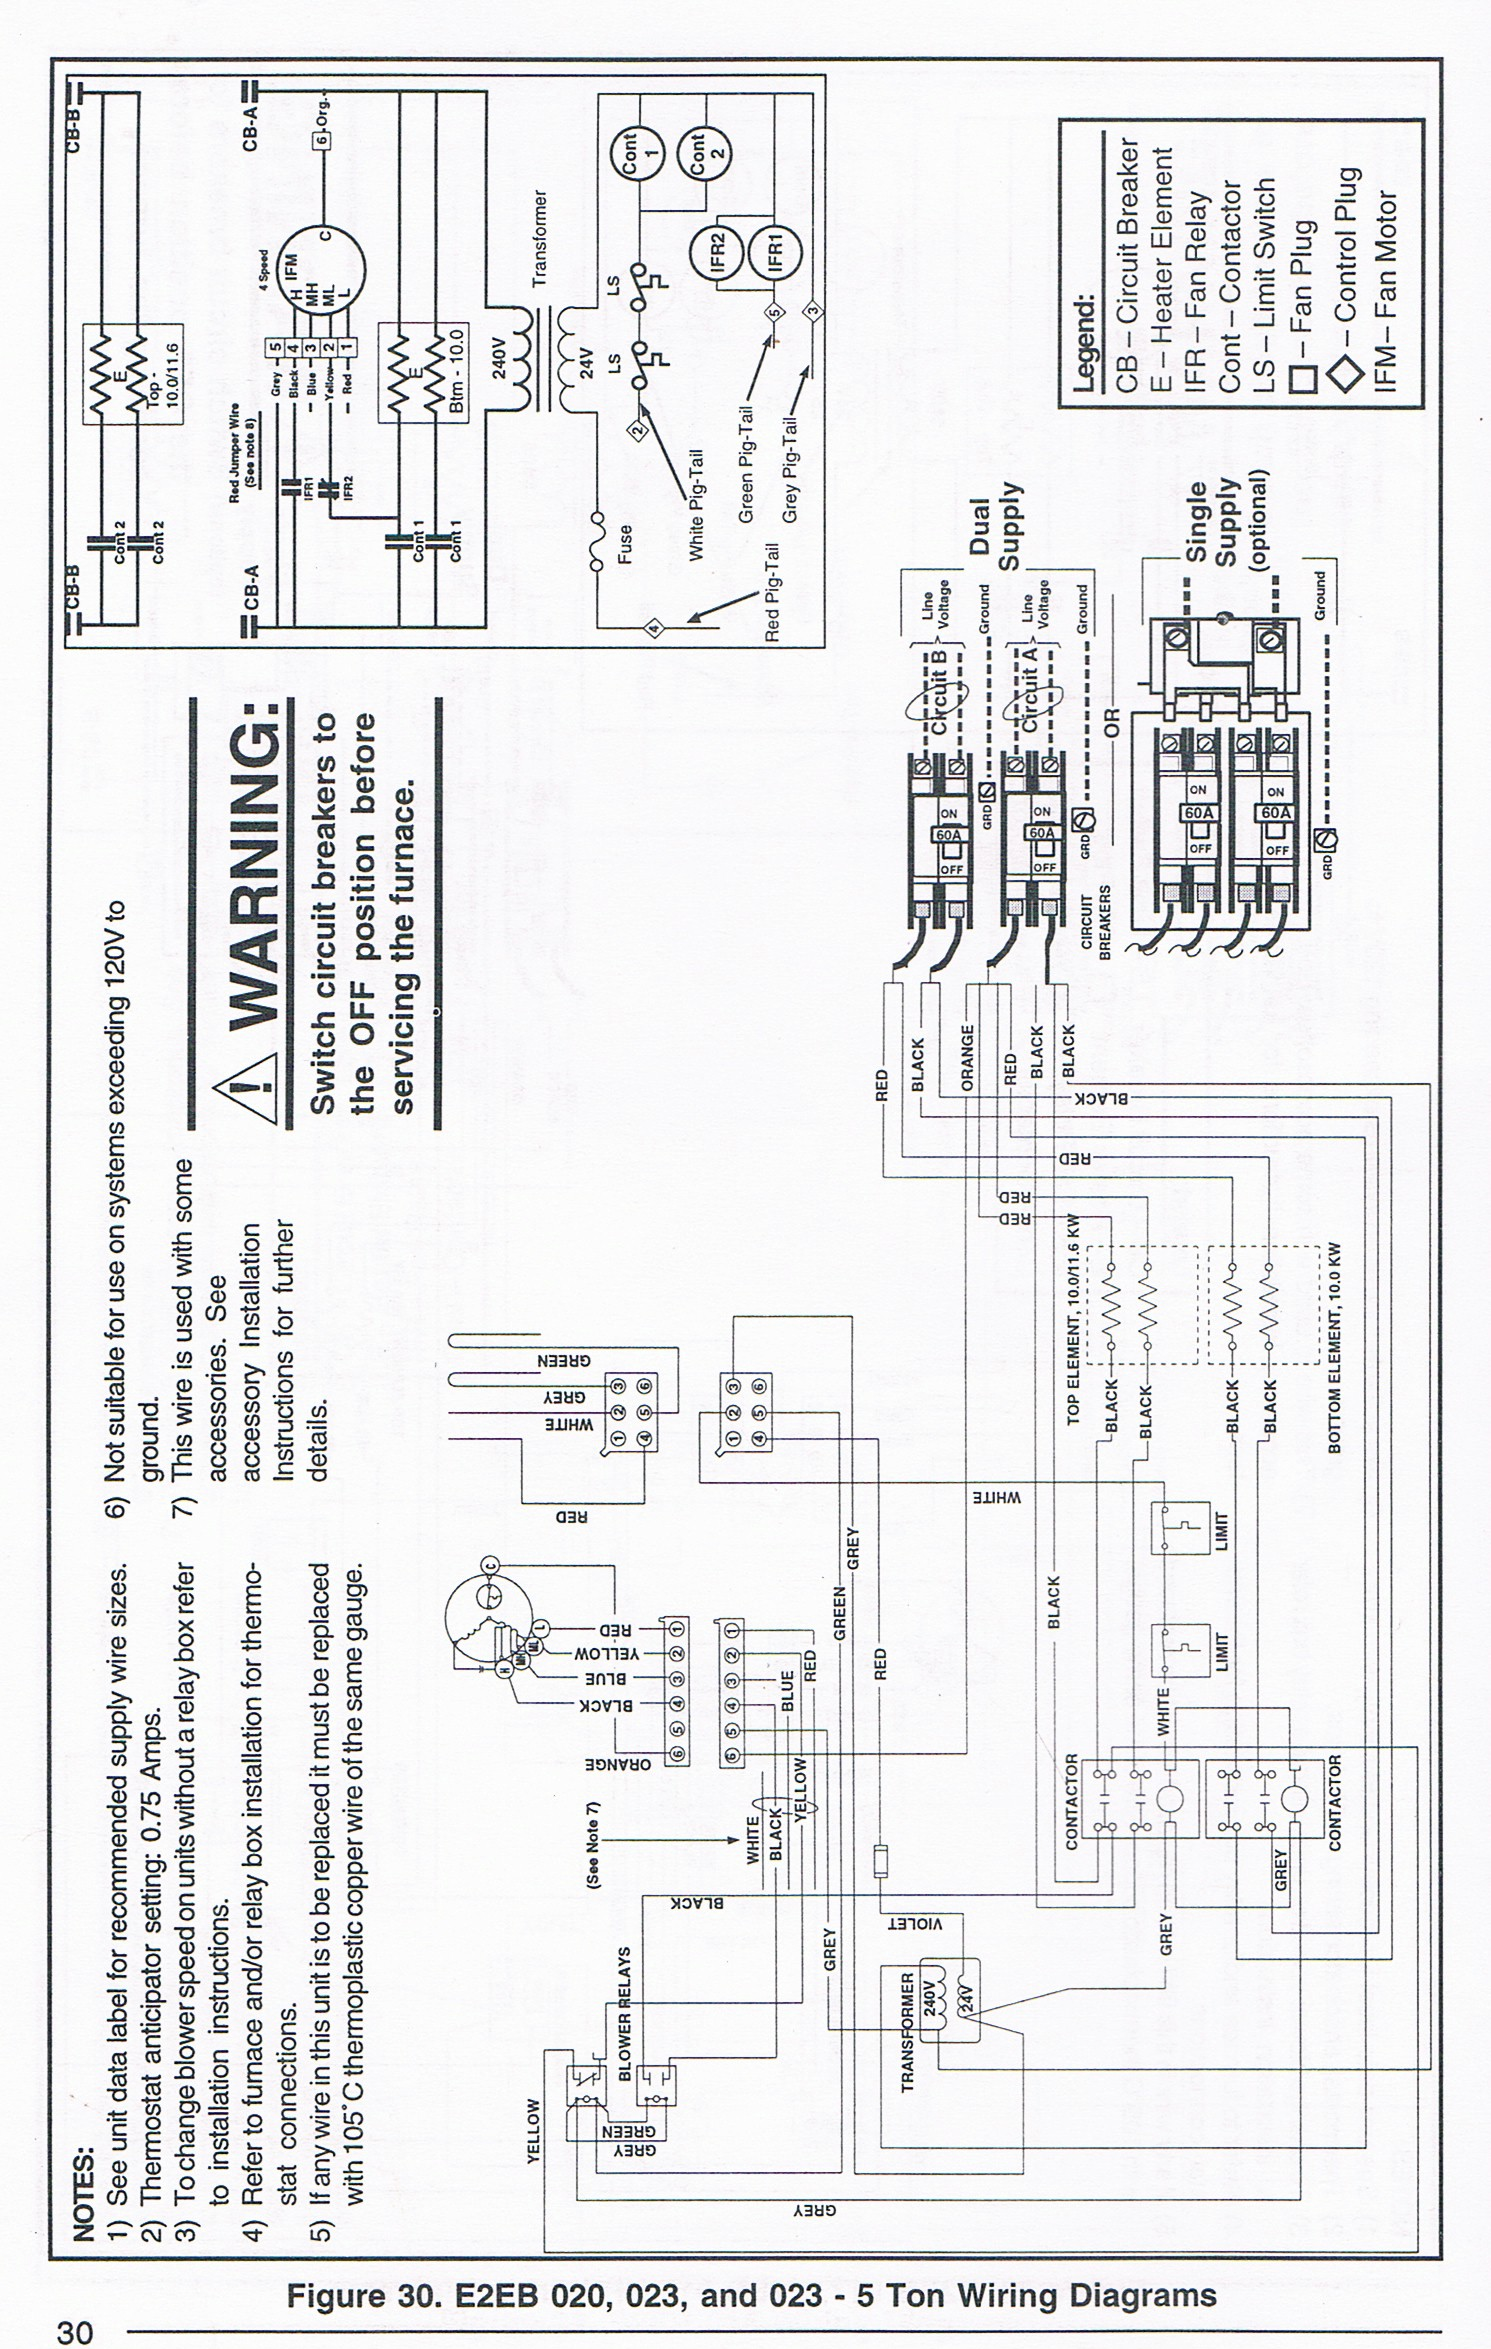 Intertherm Thermostat Wiring Diagram 36 Images A To An Electric Heater 2011 05 04 234443 E2eb 017ha U2022